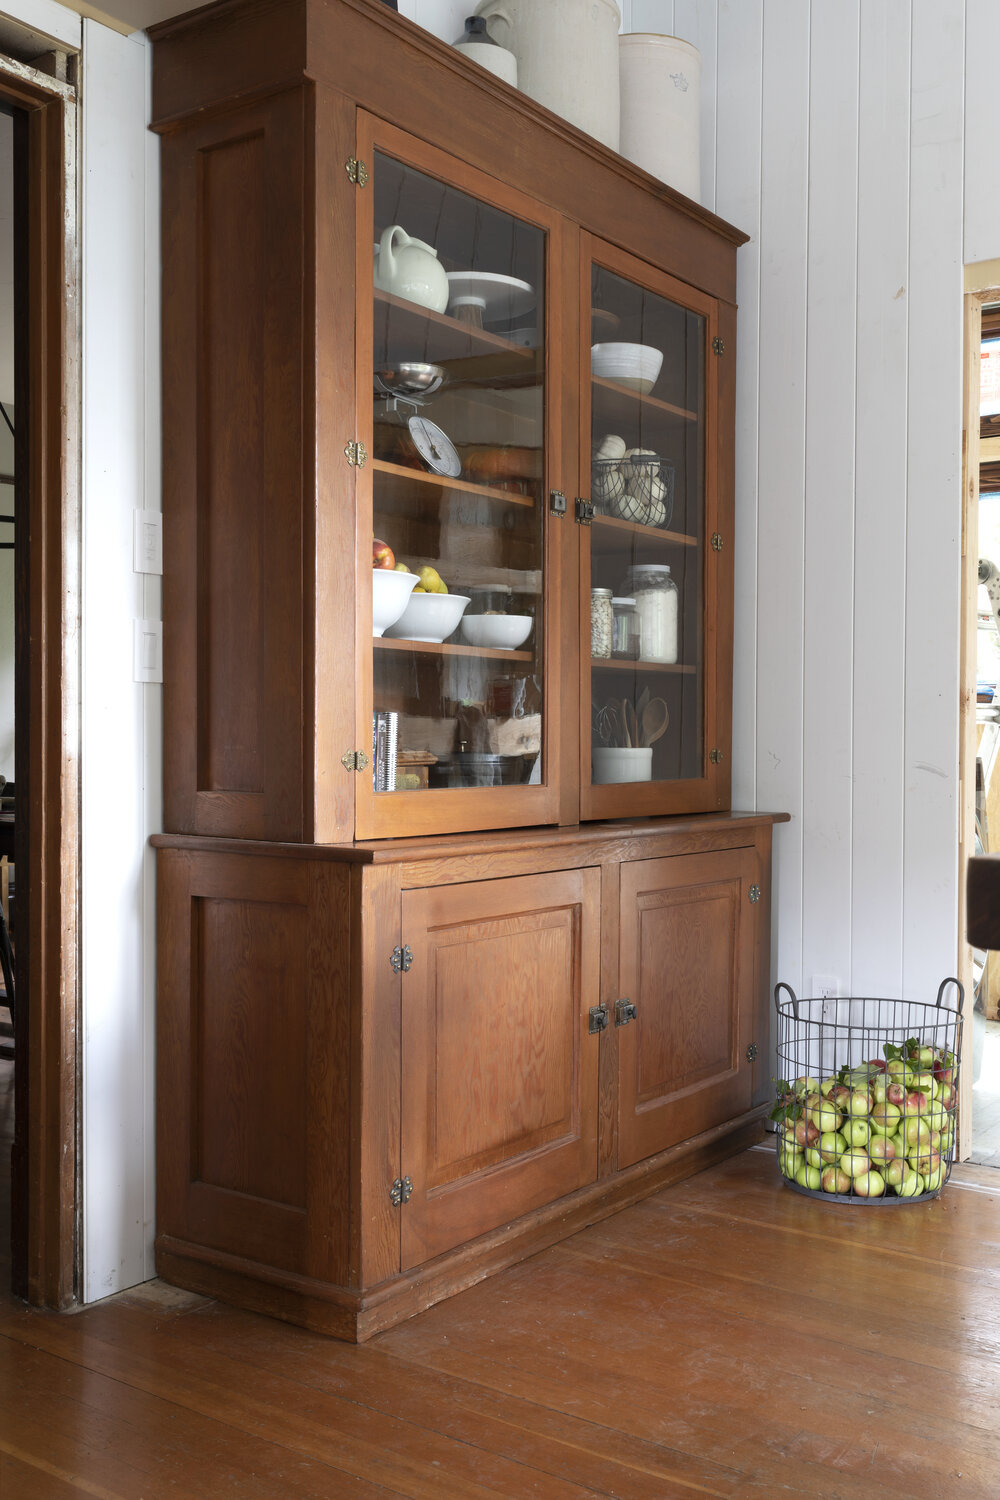 How to Sell My Antique Furniture Luxury Incorporating Vintage Furniture Into A Kitchen Remodel — the